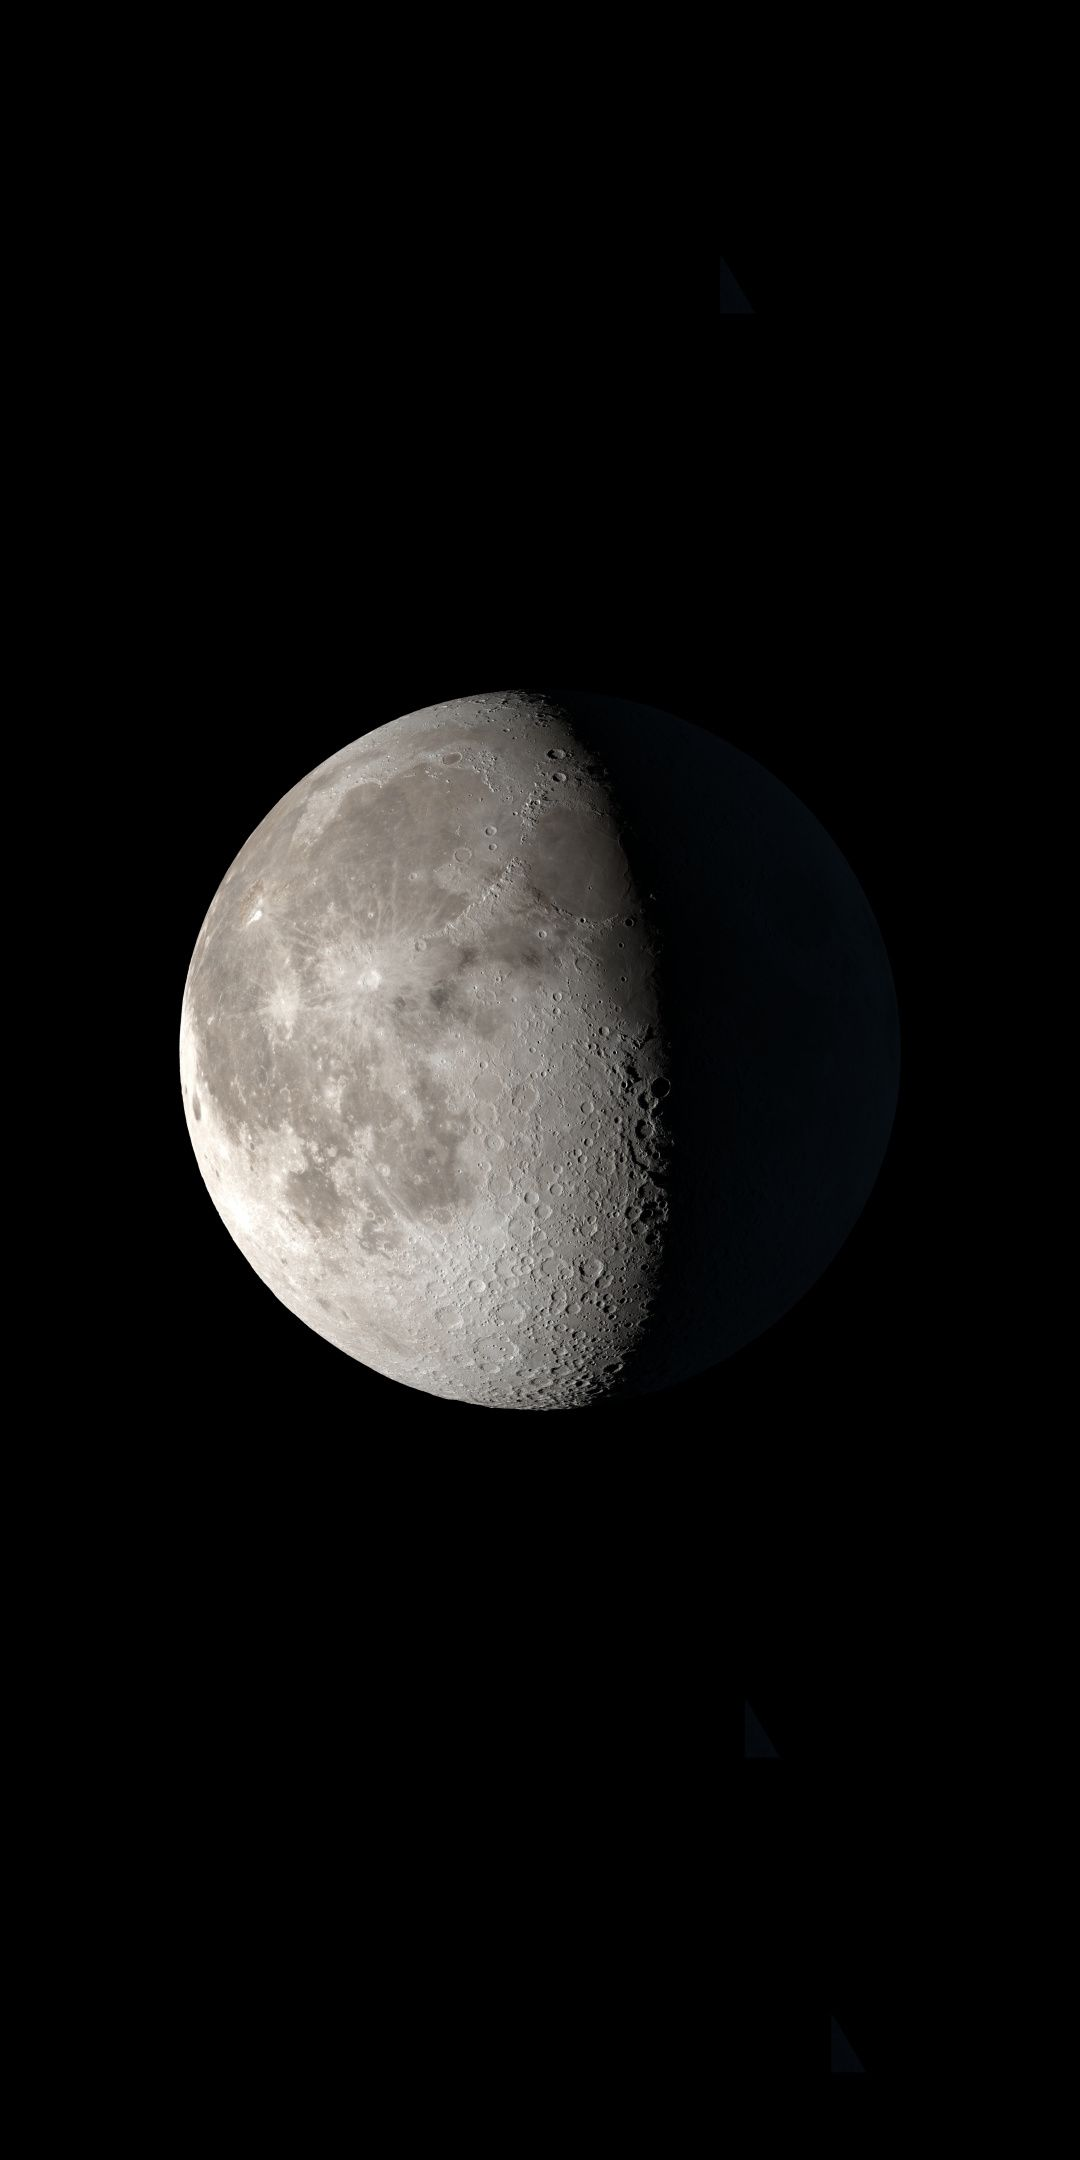 The Moon, surface, 1080x2160 wallpaper